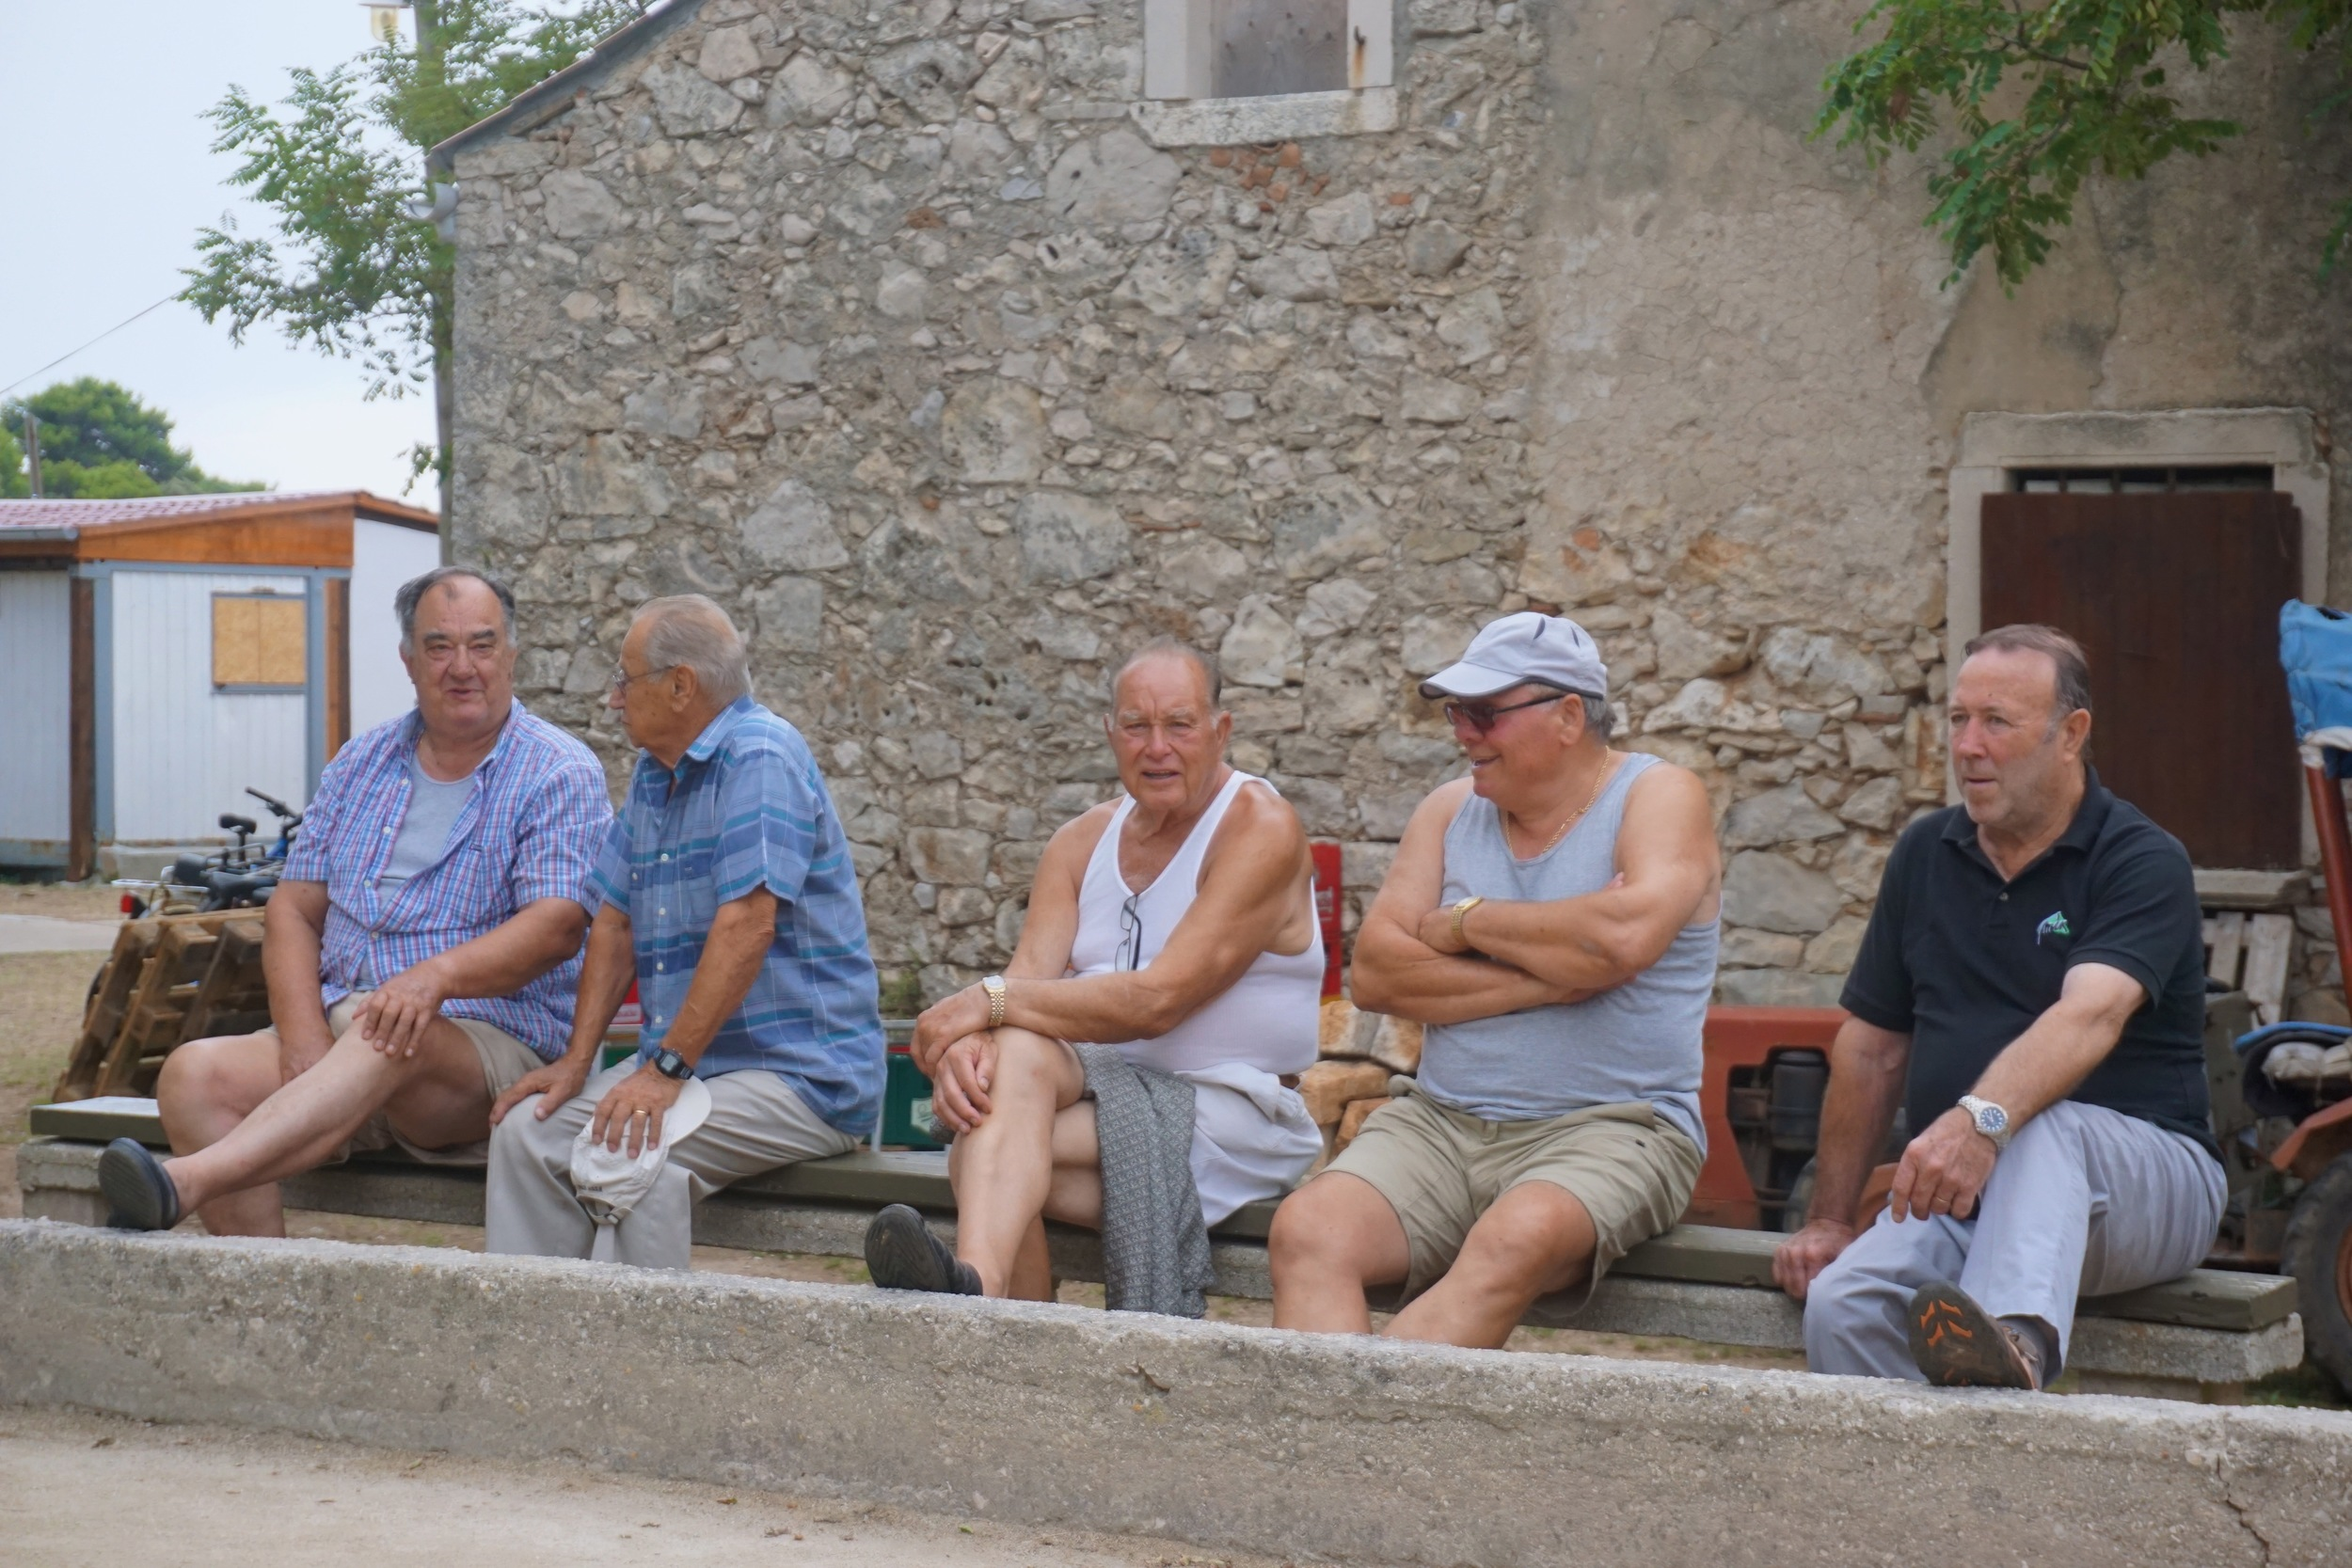 Some of the older guys on the island watching Bocci Ball.